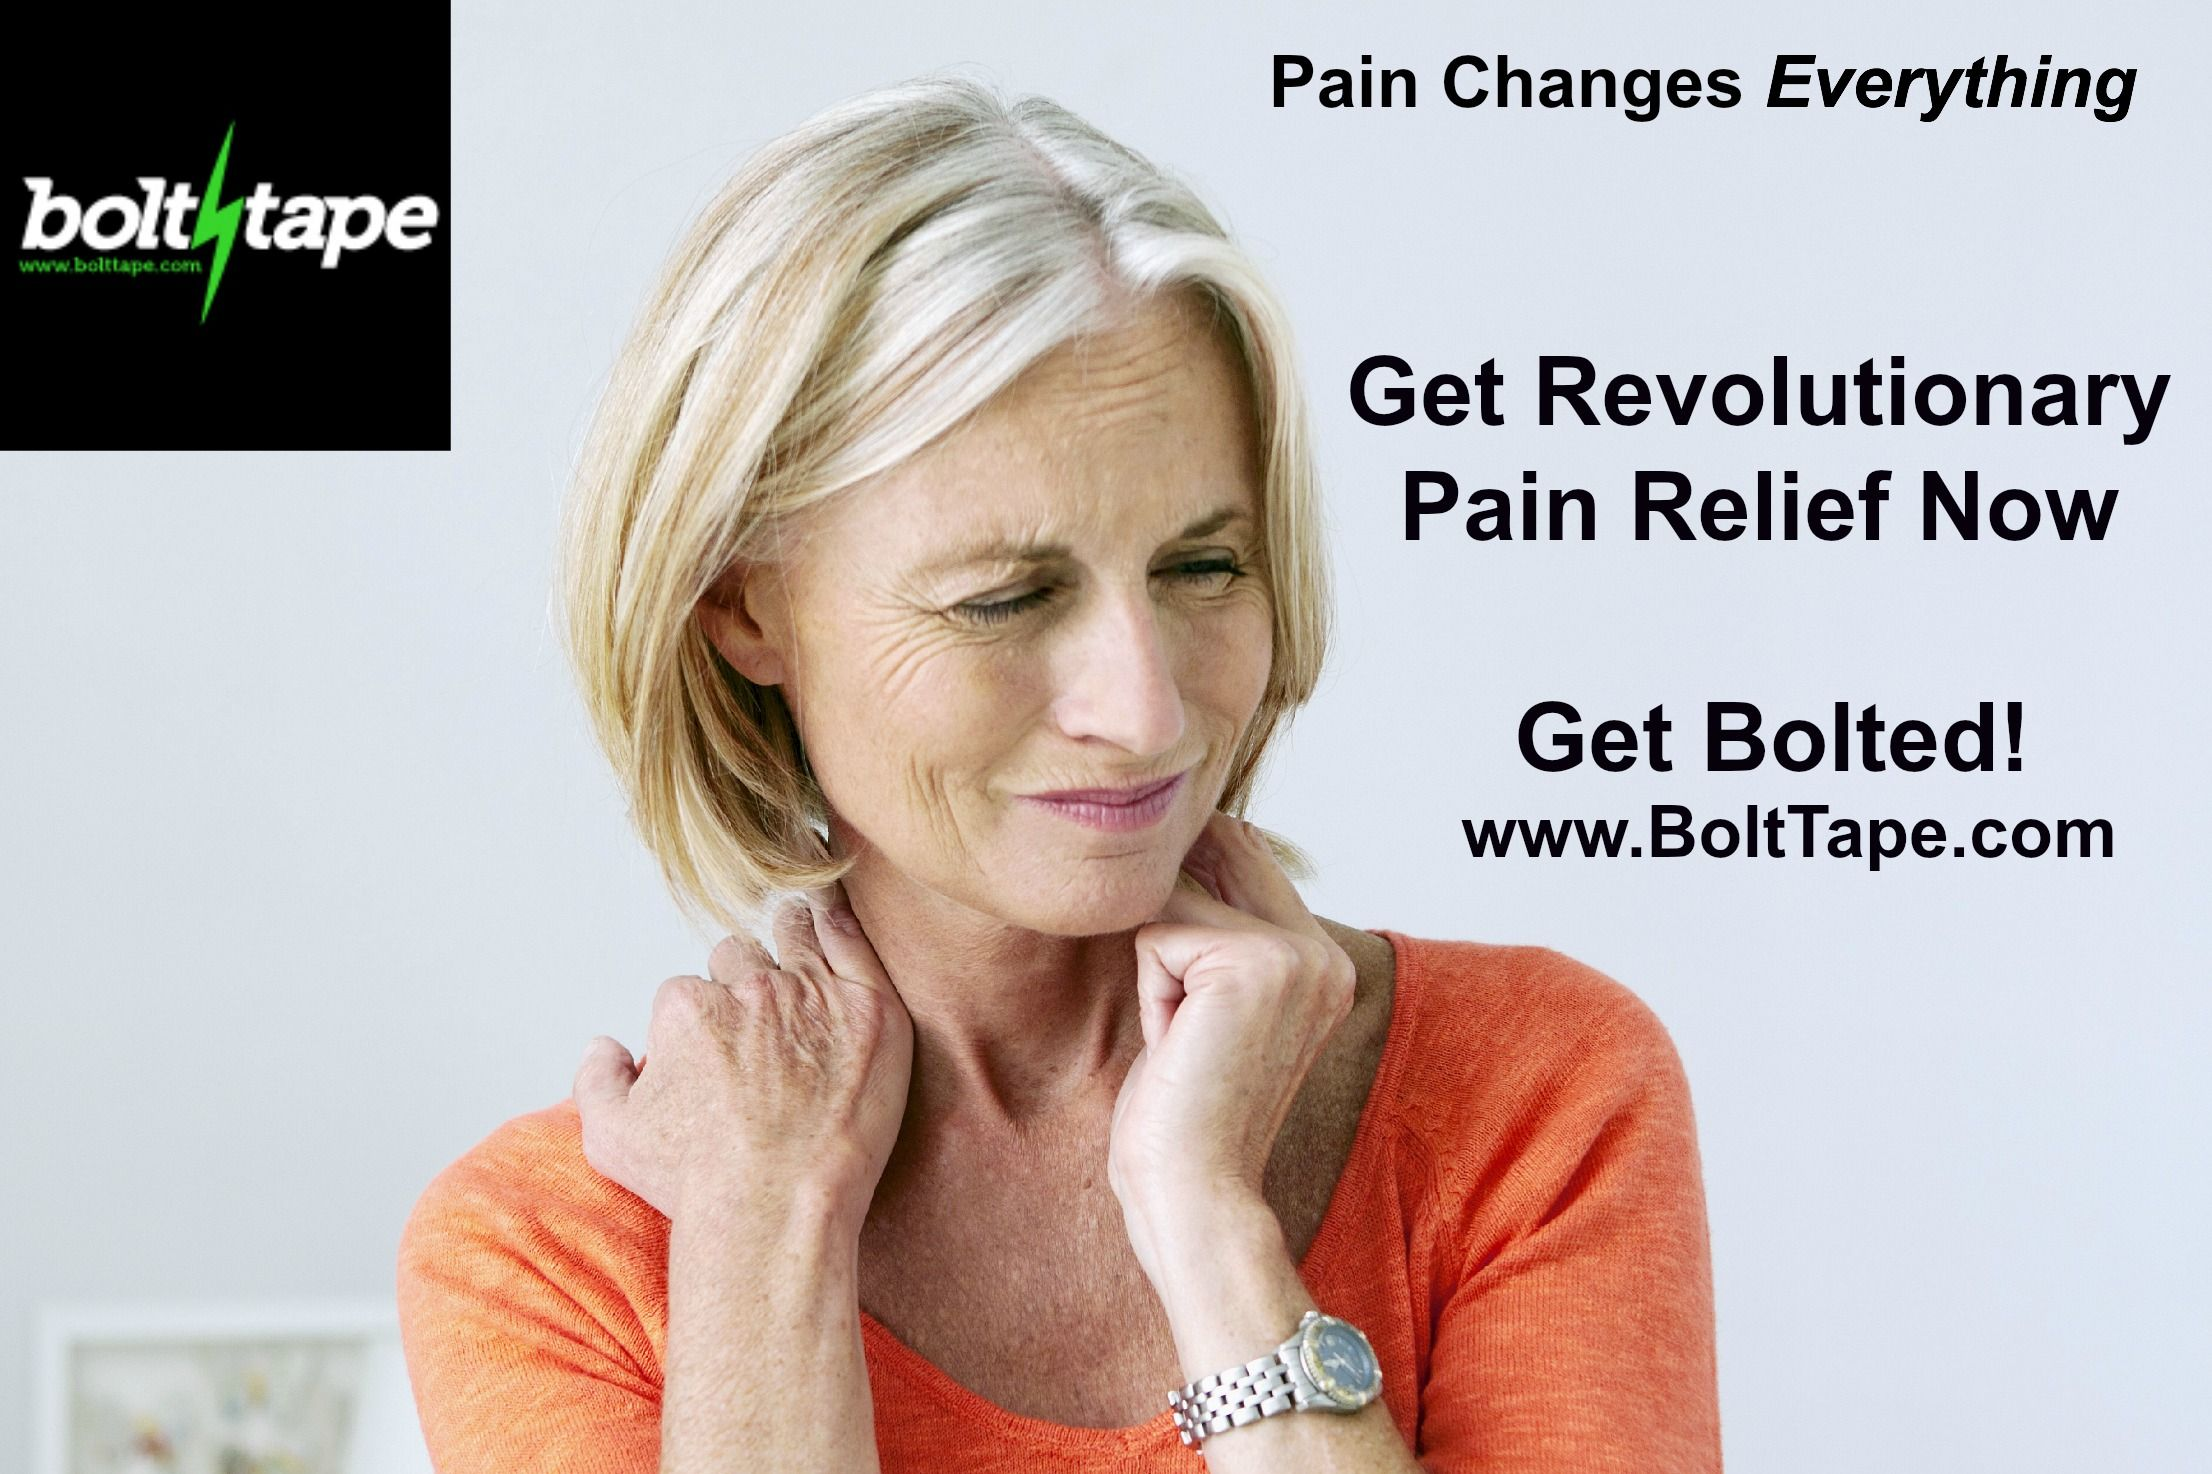 Bolt Tape is the first and only sports tape to combine the benefits of tape with an all natural energy solution for revolutionary, drug-free pain relief and increased muscle mobility.    Each Bolt Tape strip provides effective relief for acute and mild to moderate pain associated with muscle strains, inflammation, arthritis, headaches and other injury/illness symptoms.